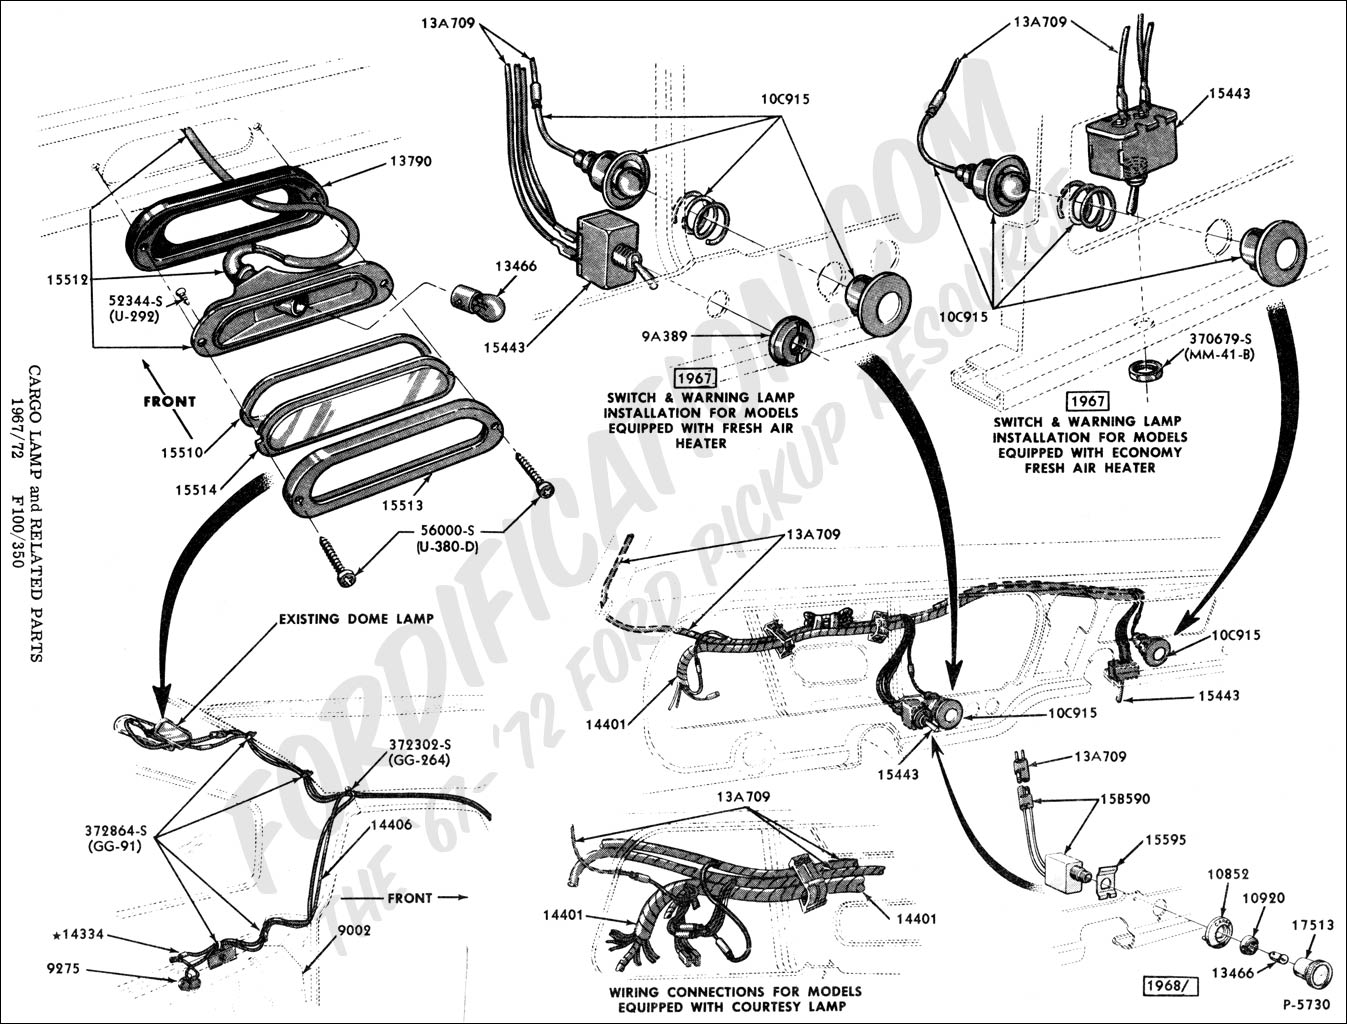 Ford F Fuse Box Diagram Wiring Amazing further Ford F150 F250 Why Cant I Get Into Or Out Of 4wd 360779 furthermore Vacum Line Diagram 23773 also 5 4 Triton Engine Sensors Diagram also 93 Ford F150 Engine Diagram. on ford f 250 vacuum diagram